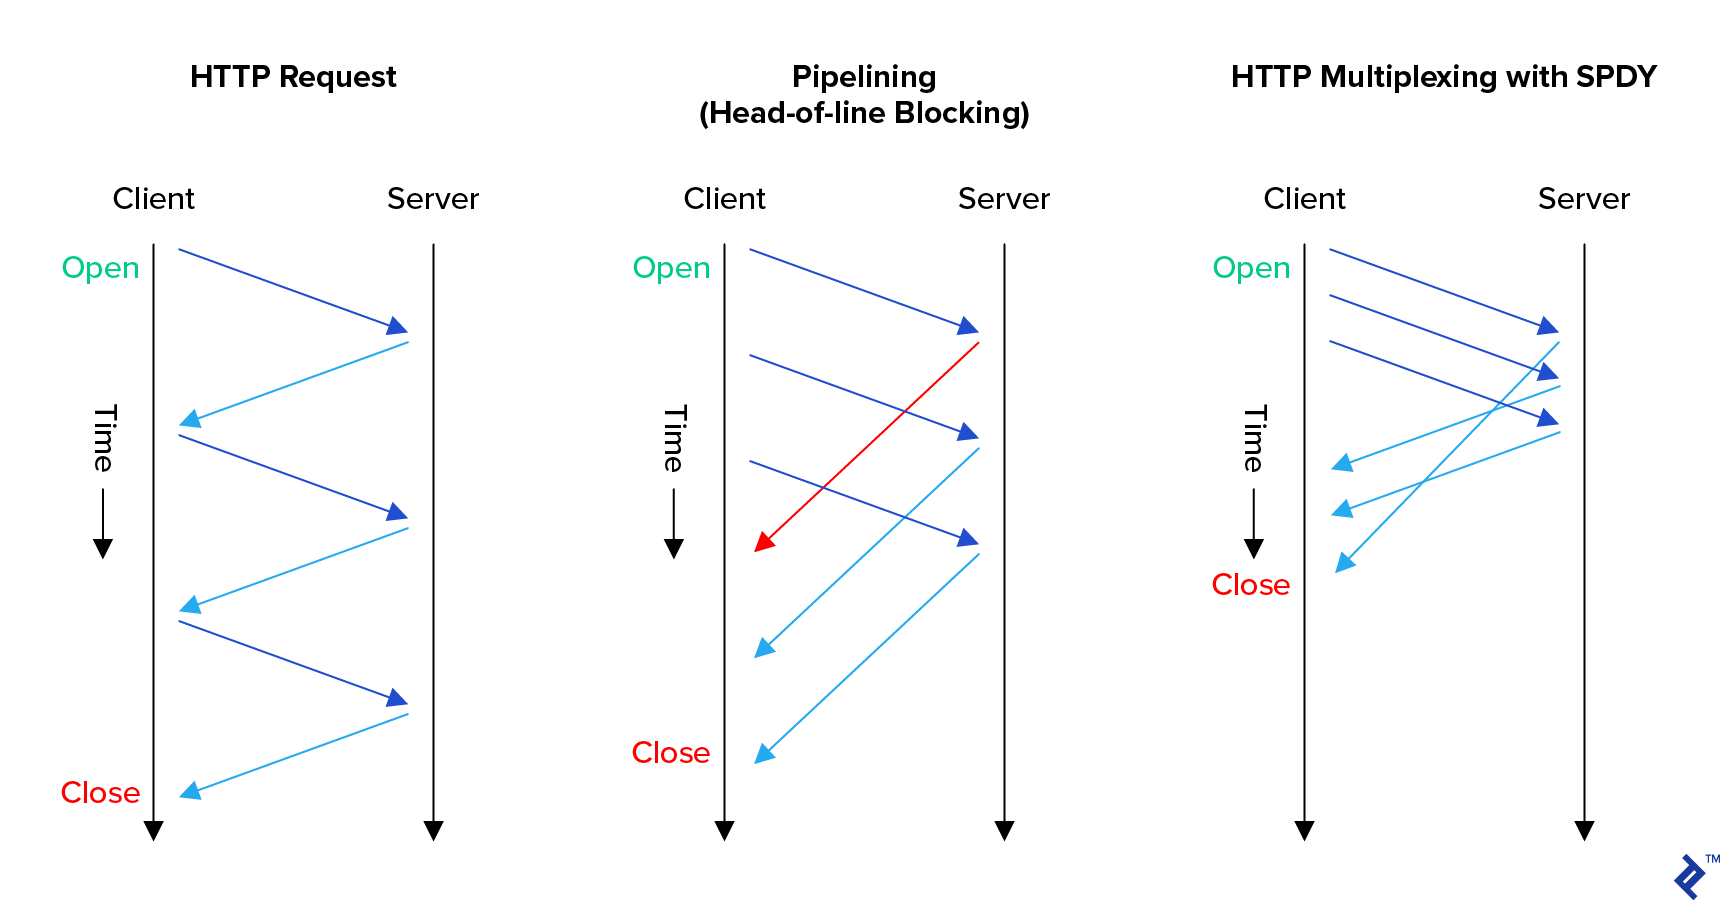 HTTP/2 multiplexing with SPDY, compared with plain and pipeline-enabled HTTP/1.1 as described in the previous image. Multiplexing shows the client's requests being sent faster, and its first request having its corresponding response sent after the responses for its second and third requests. Overall, the total communication time is thus significantly shorter.